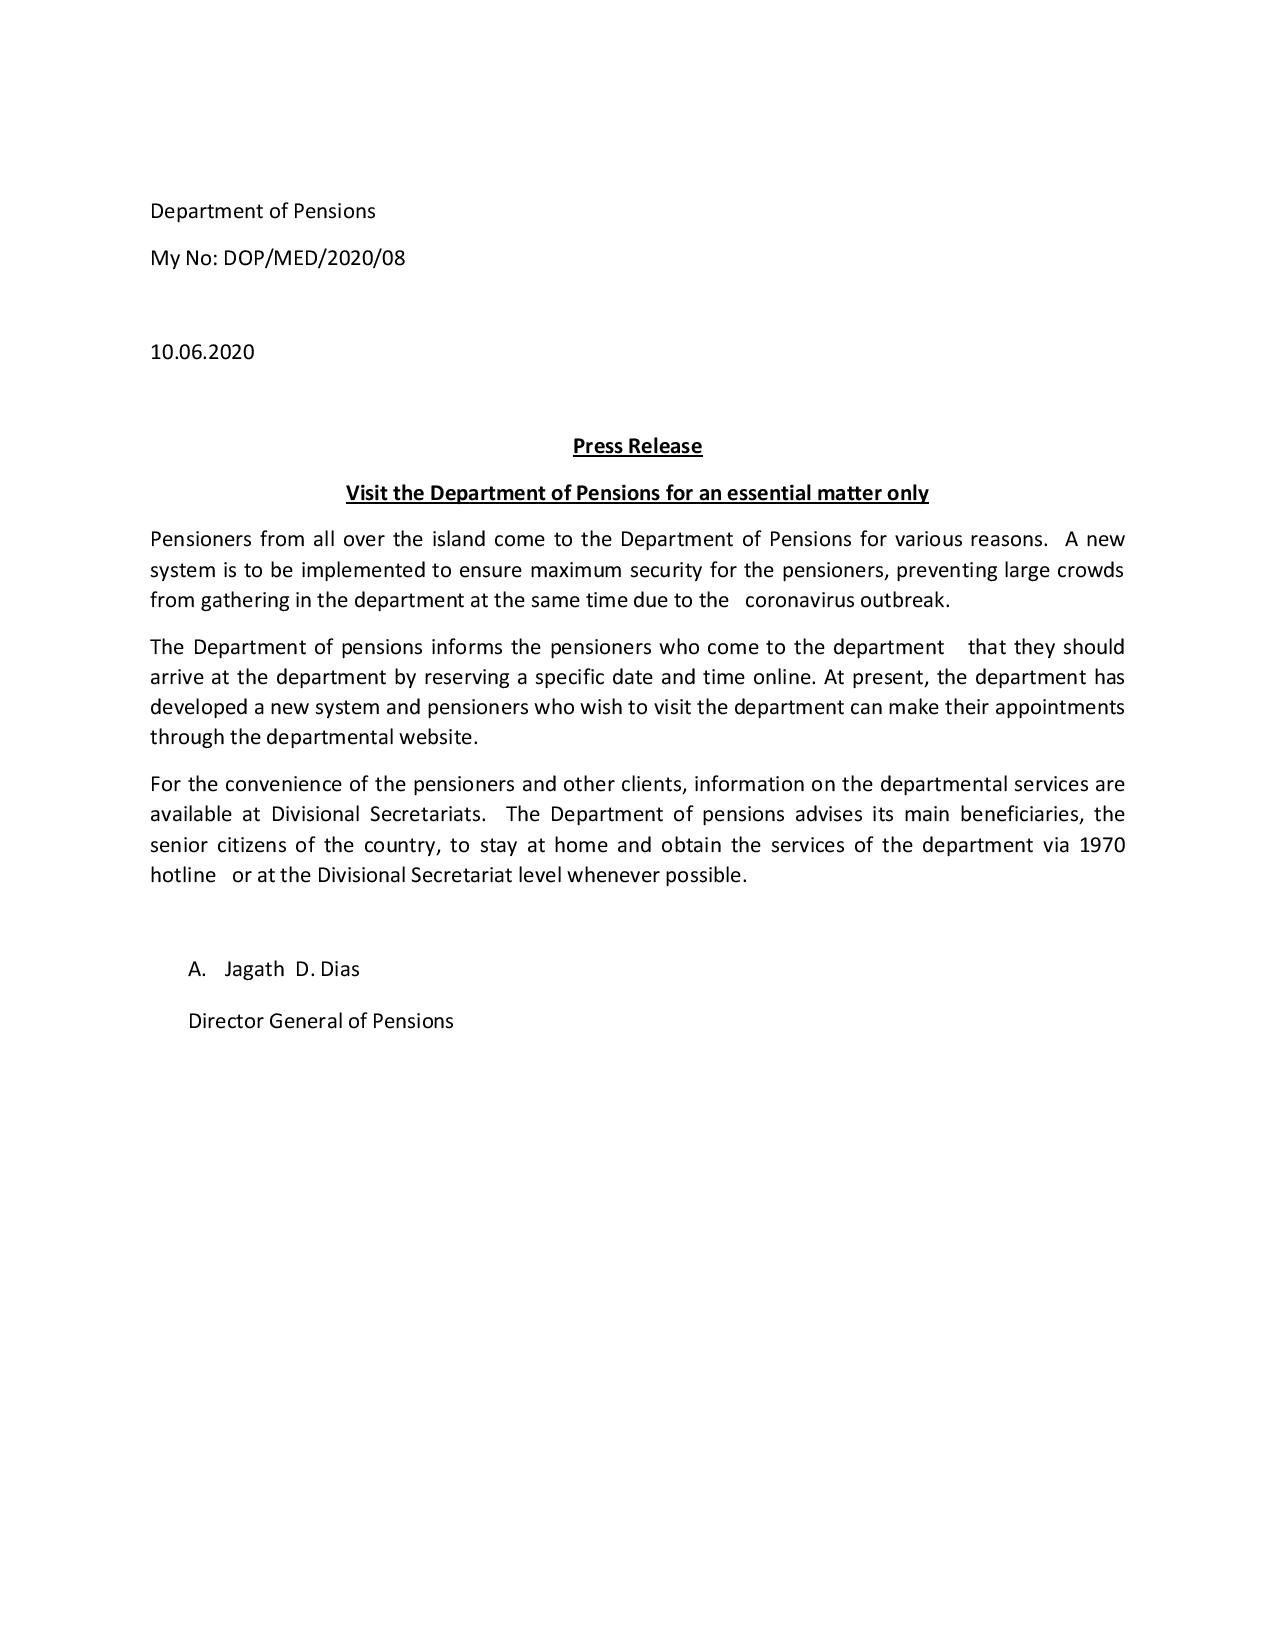 Press Release English Department of Pensions page 002